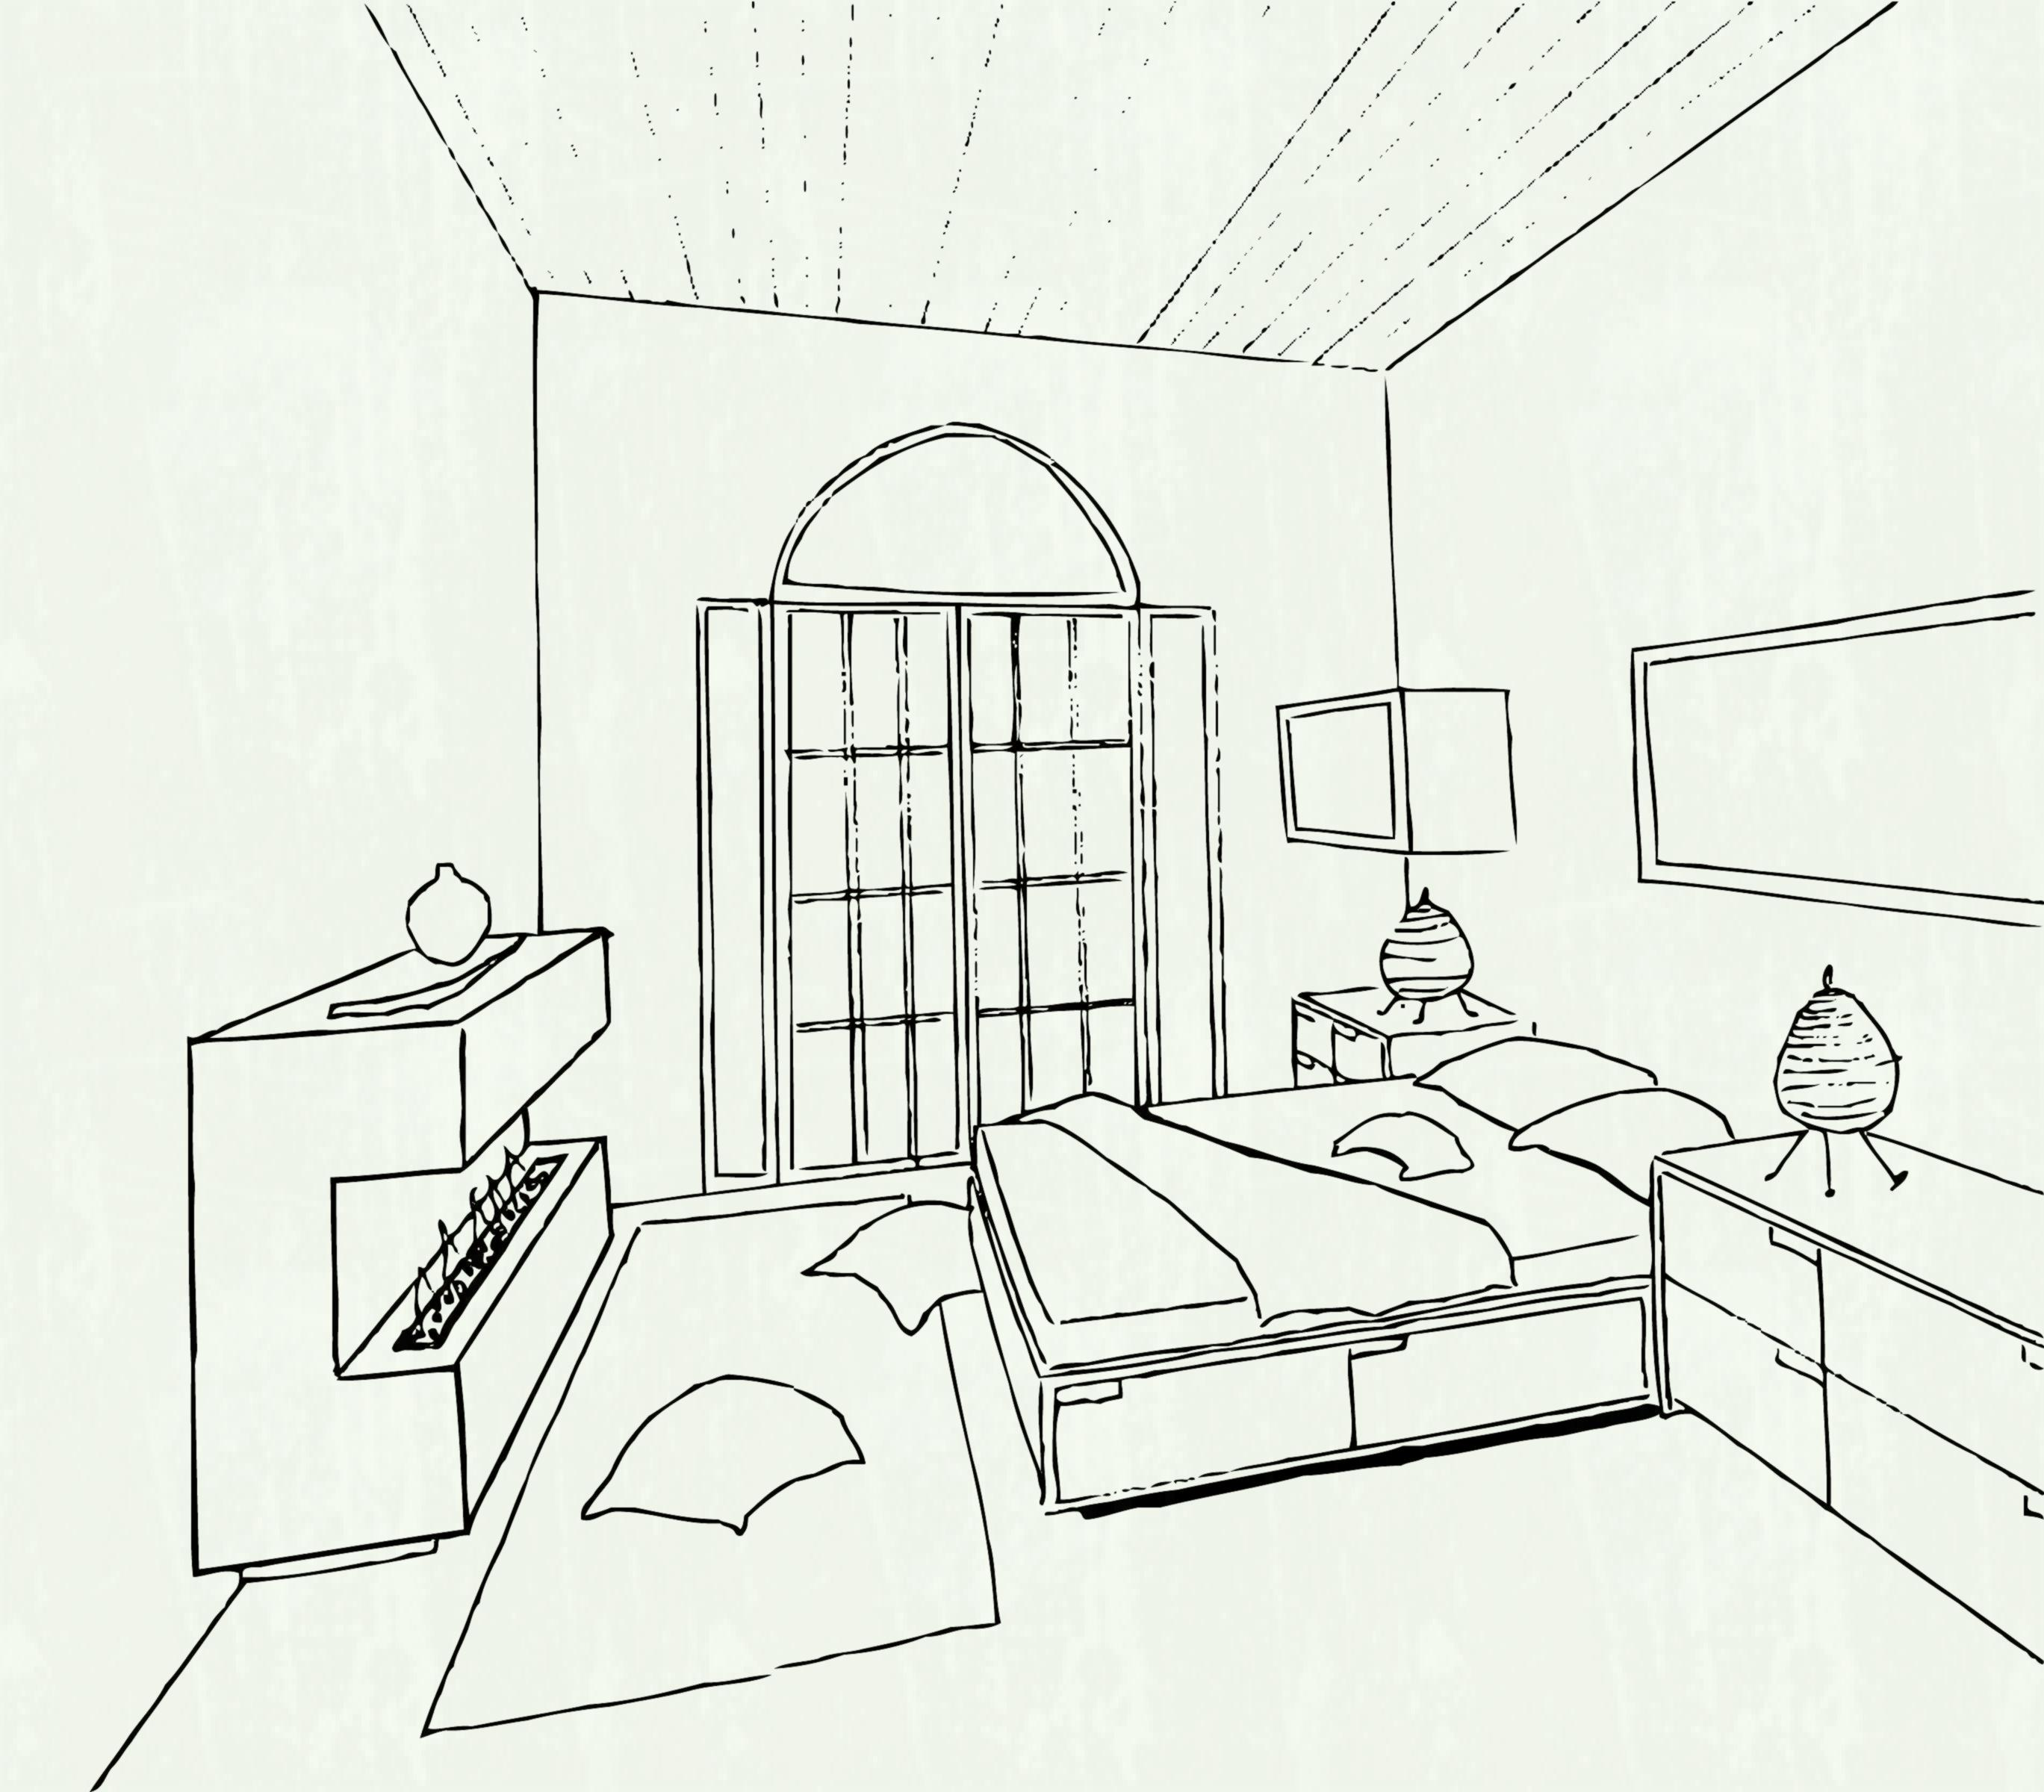 One Point Perspective Bedroom Drawing at GetDrawings.com ...